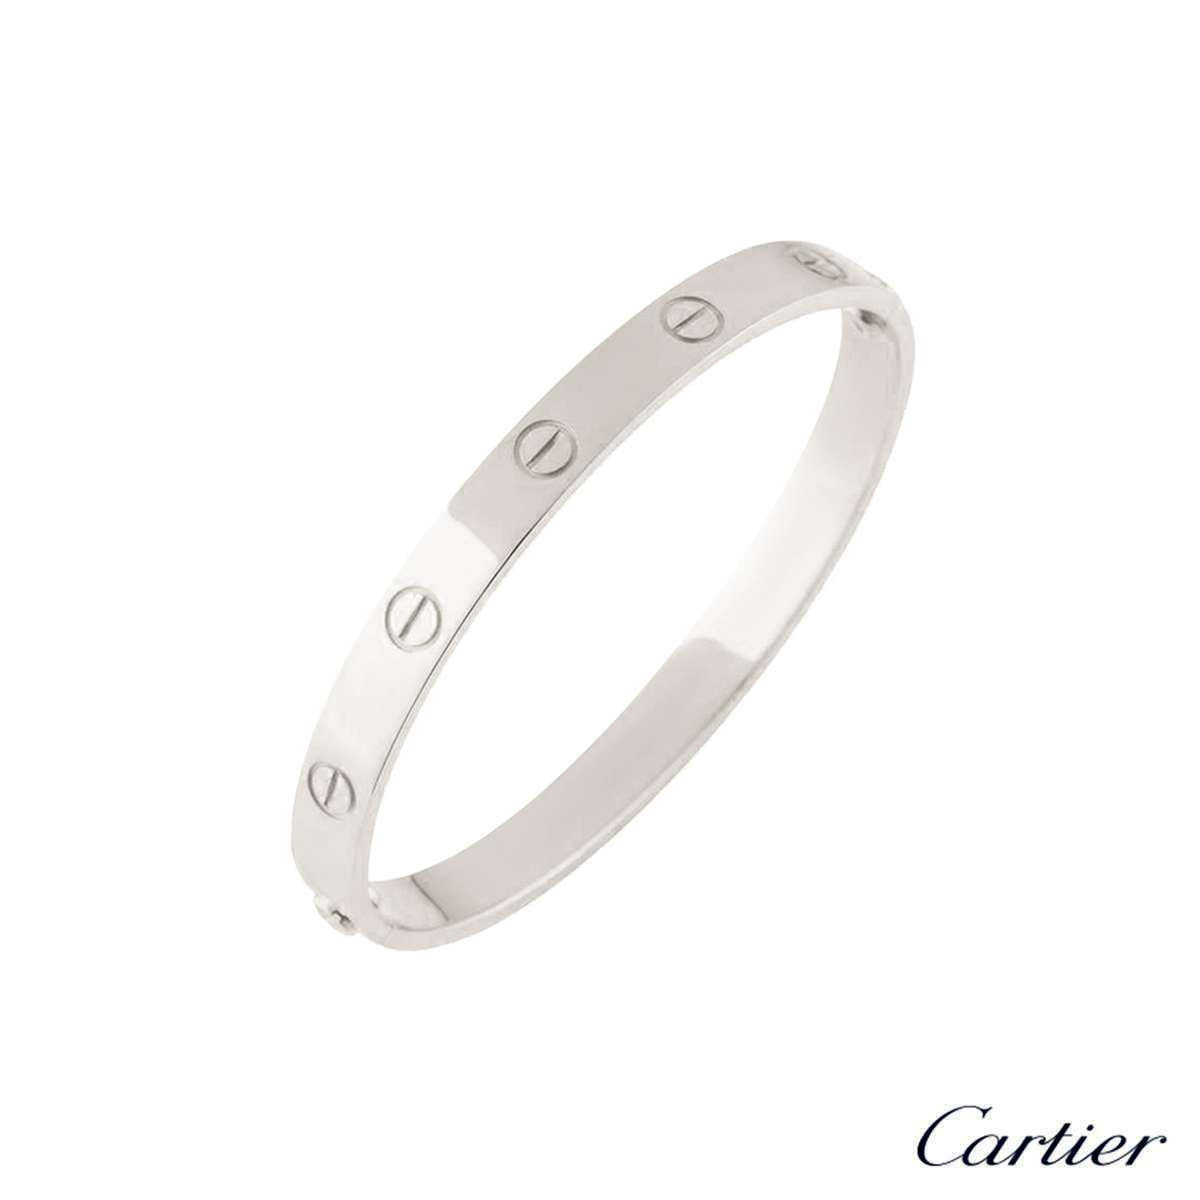 Cartier 18k White Gold Plain Love Bangle Size 16 B6035416